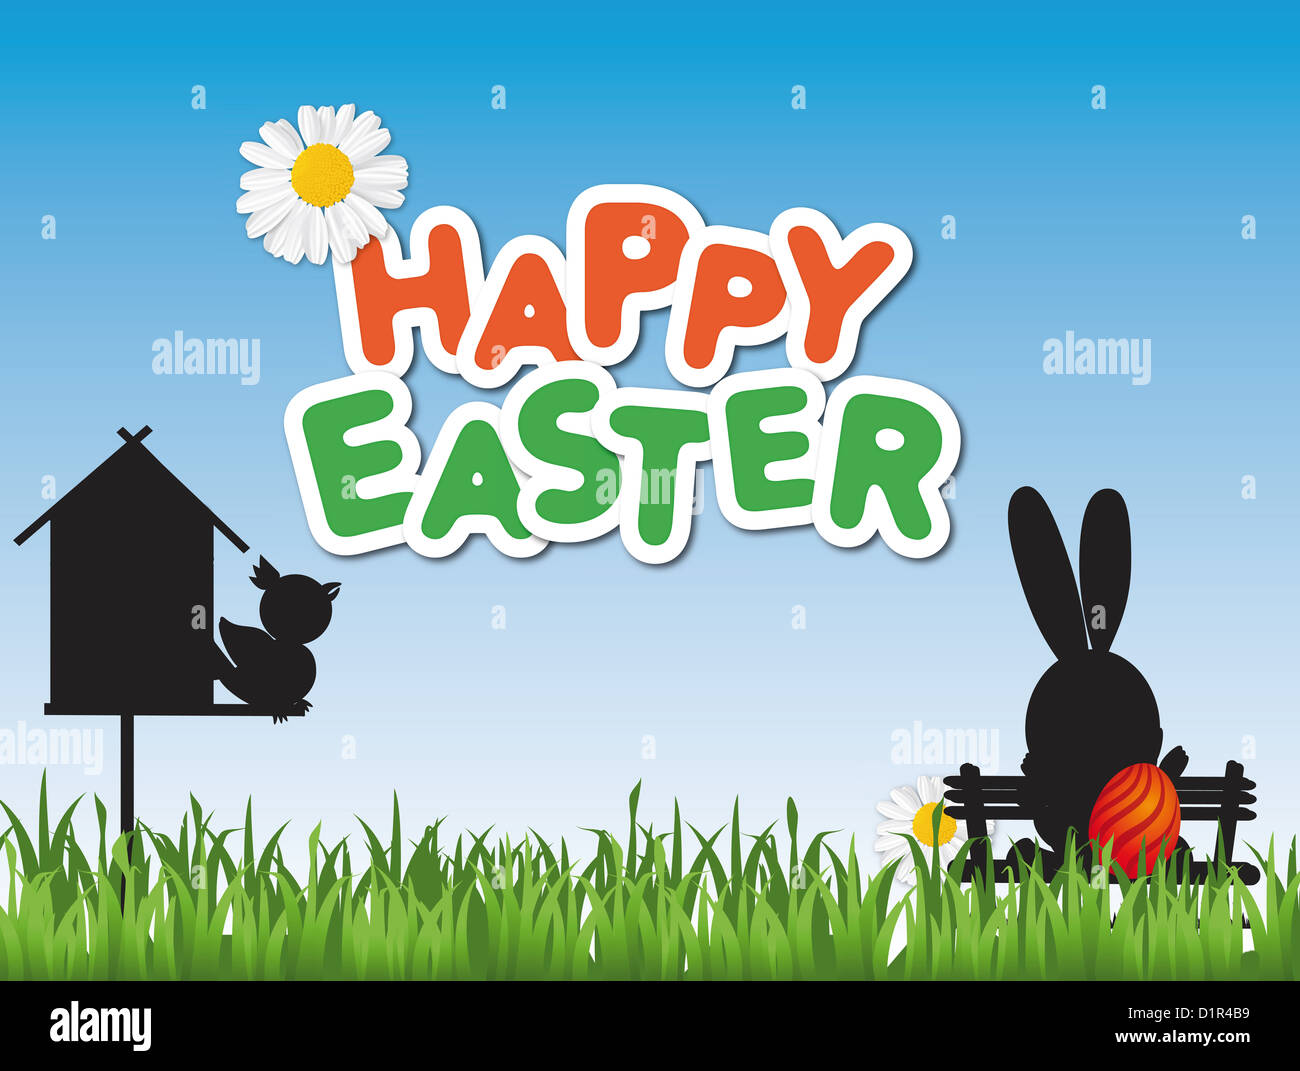 Happy Easter card with a birdhouse and an Easter bunny on a park bench - Stock Image